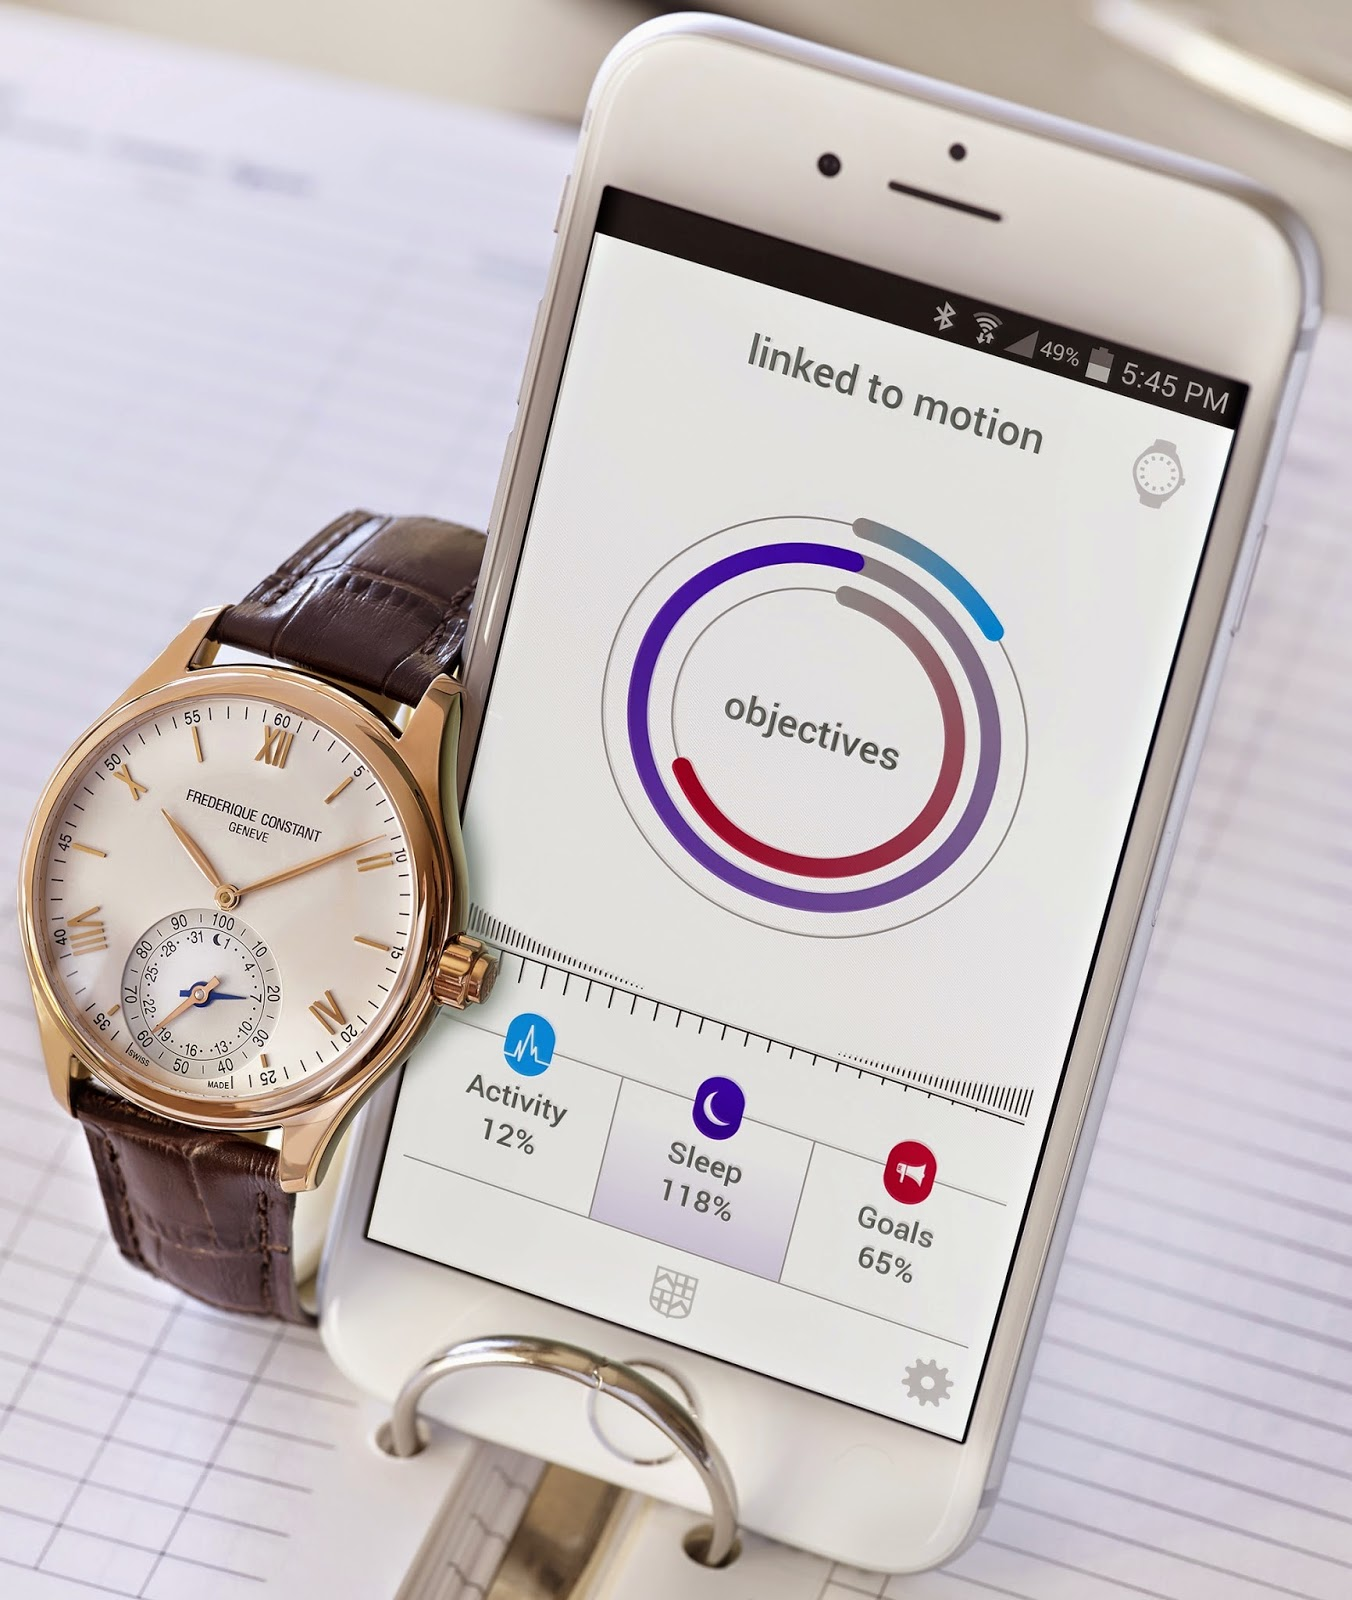 Montre Frédérique Constant The Swiss Horological Smartwatch et son application mobile